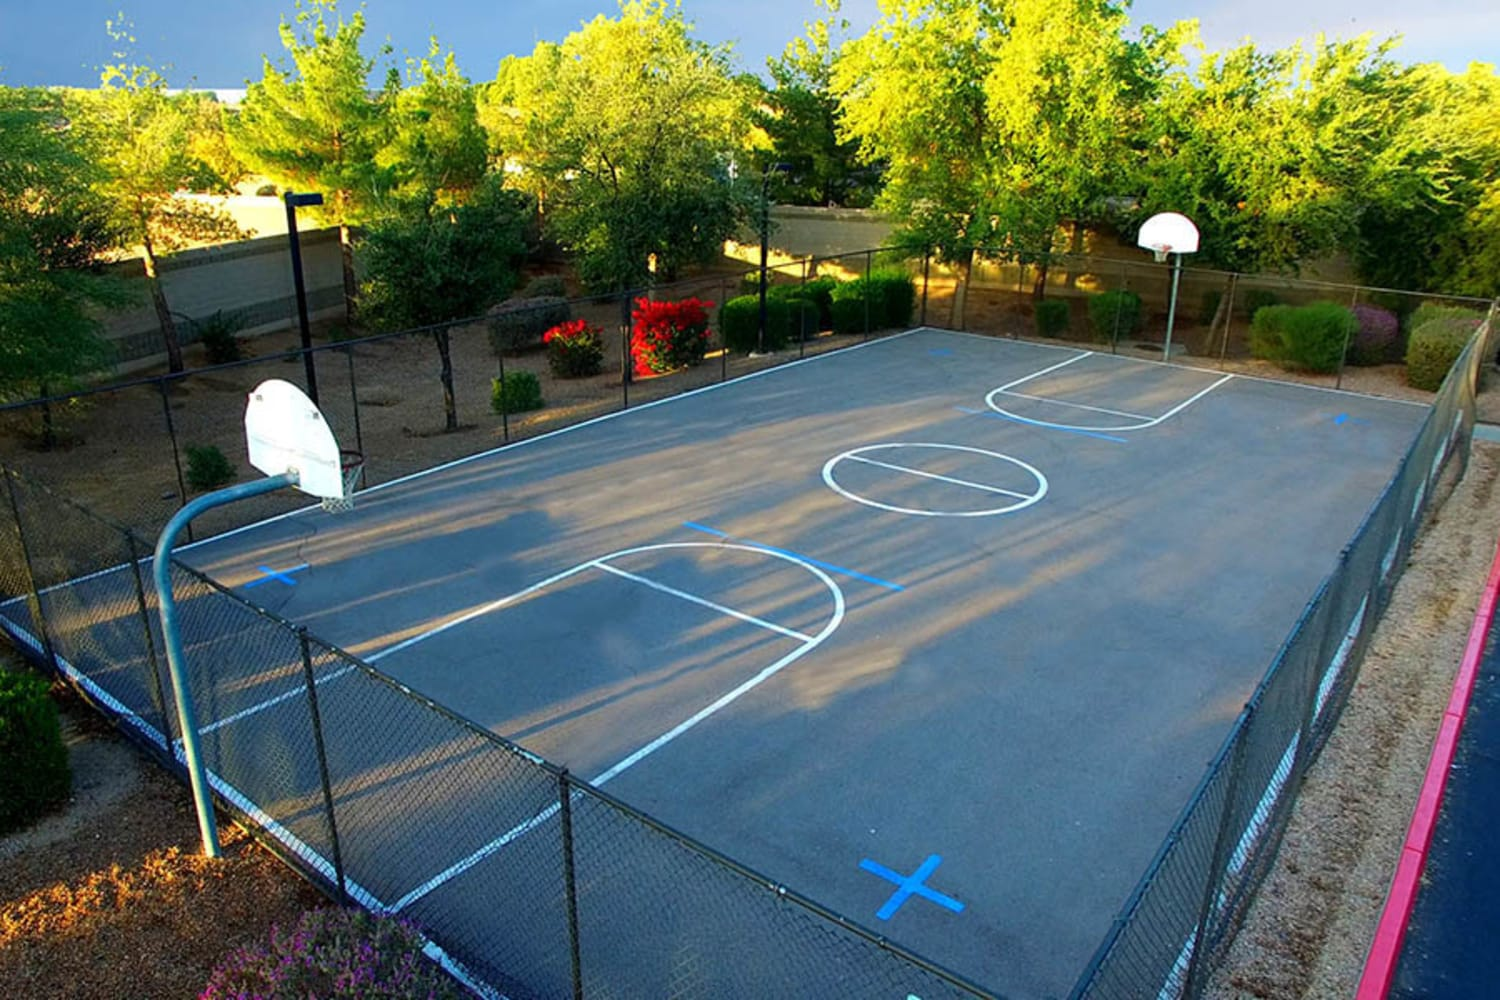 Basketball court at 2150 Arizona Ave South in Chandler, Arizona